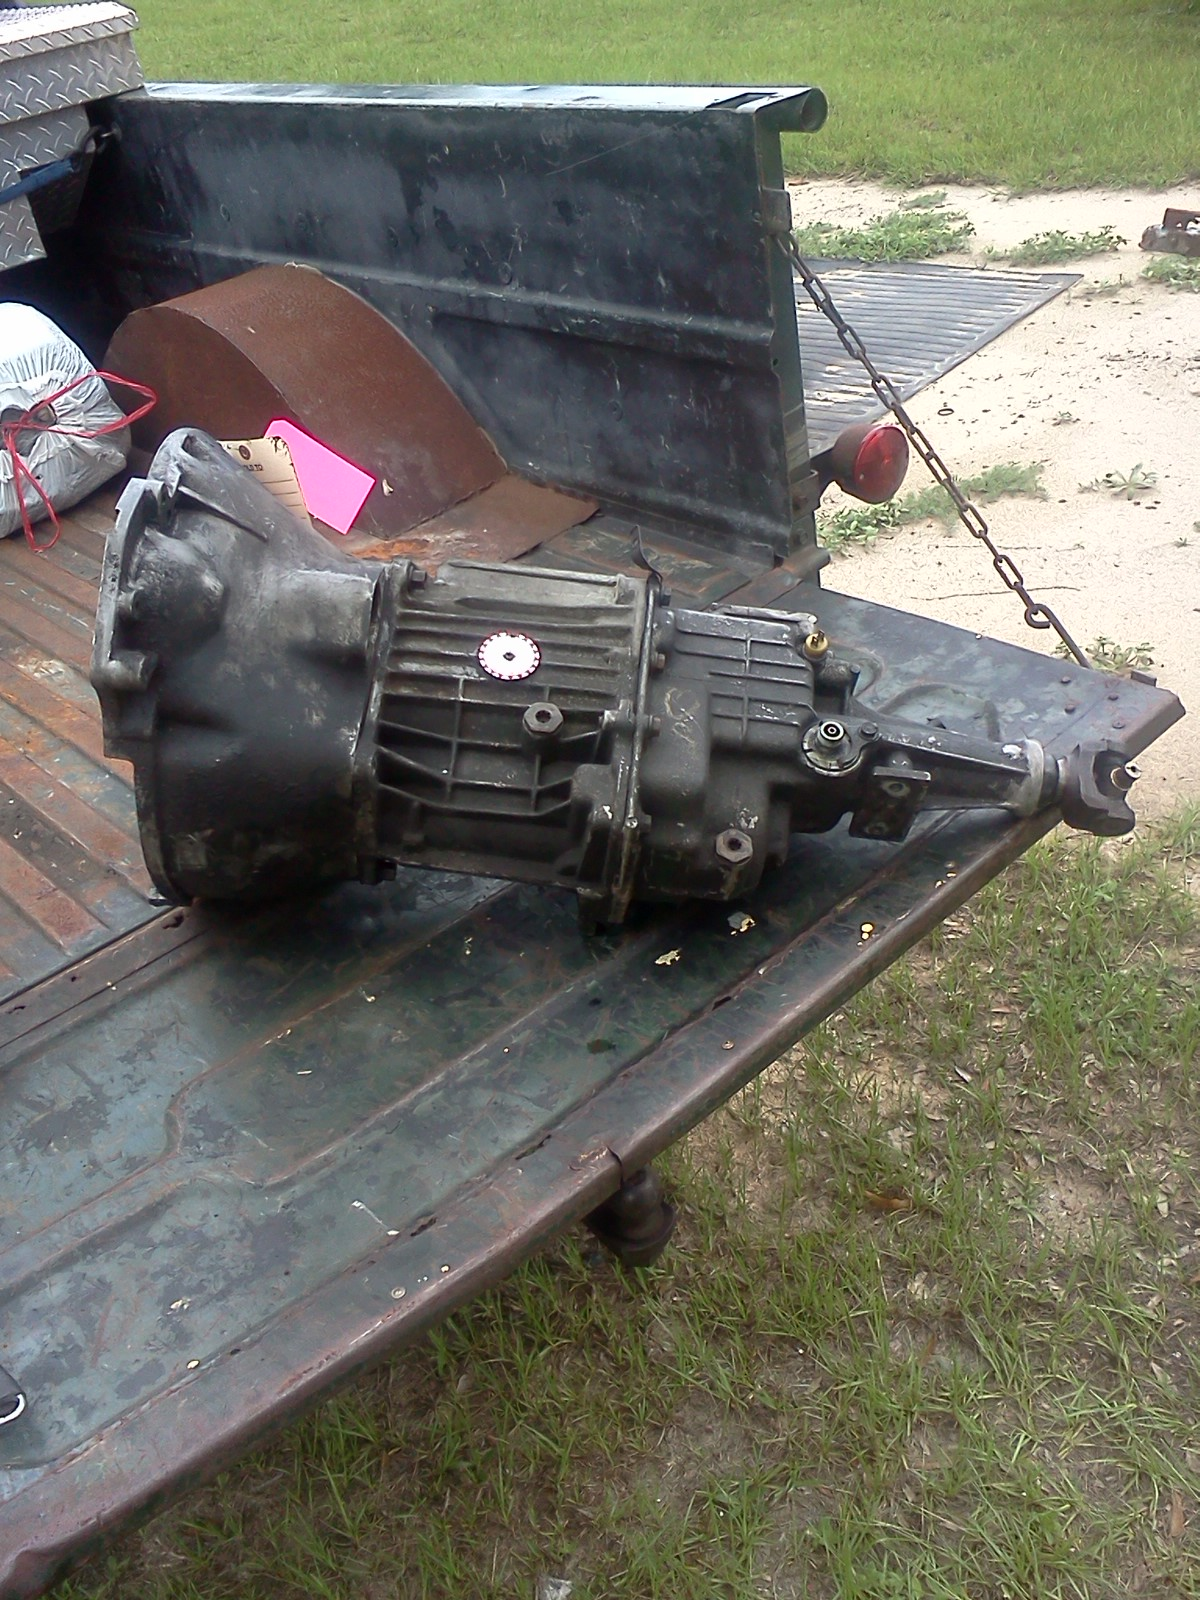 Truck 5 Speeds A535 Shifter Pic Update Moparts Jeep Nv4500 Speed Gear Train Diagram Dodge Chevy 7734718 1